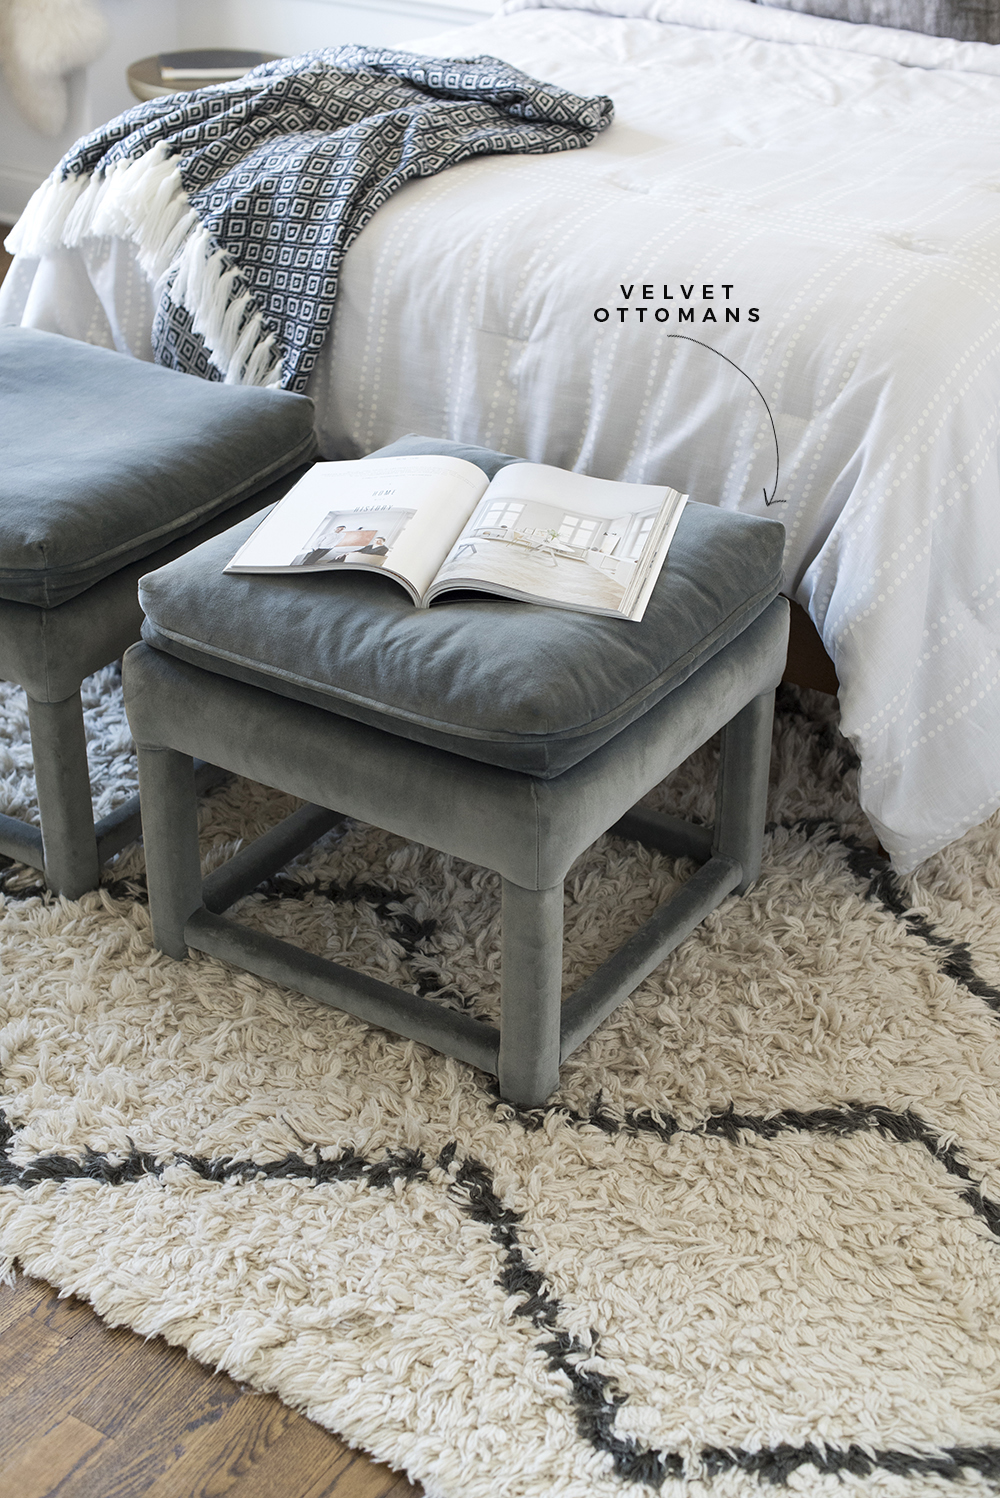 Tips for Scoring Used & Vintage Furniture Online - roomfortuesday.com